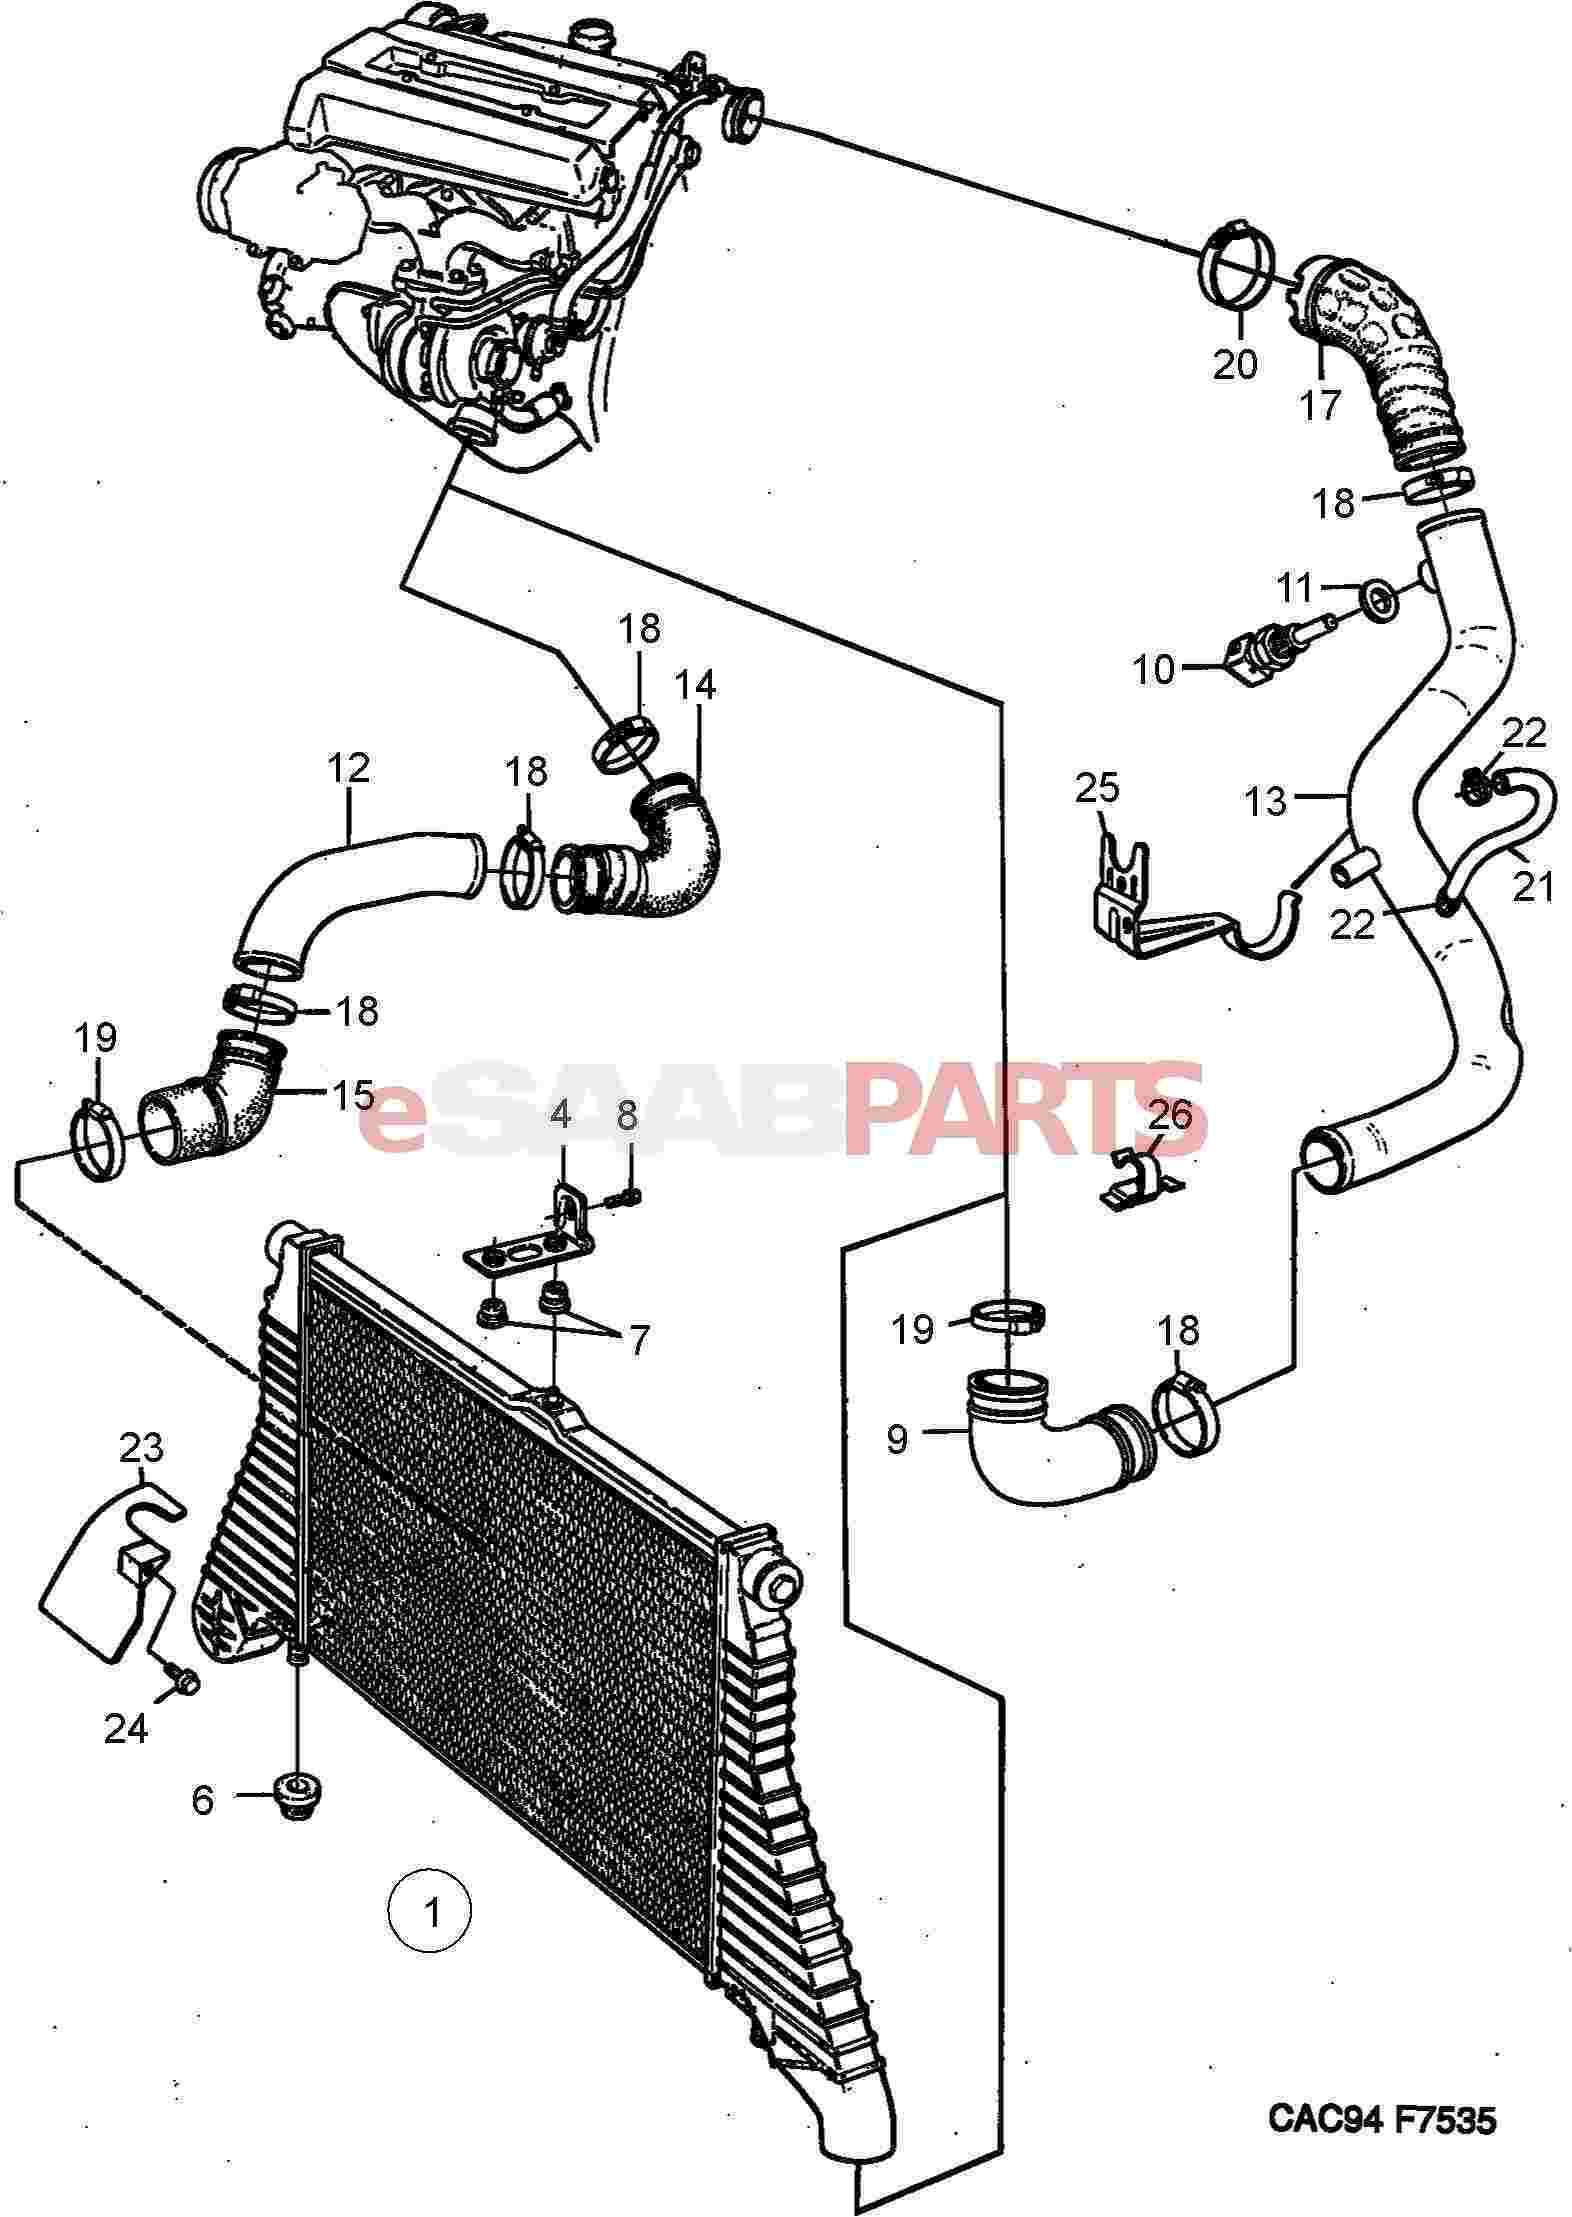 hight resolution of 1987 ford ranger fuse diagram another blog about wiring diagram u2022 rh ok2 infoservice ru 1987